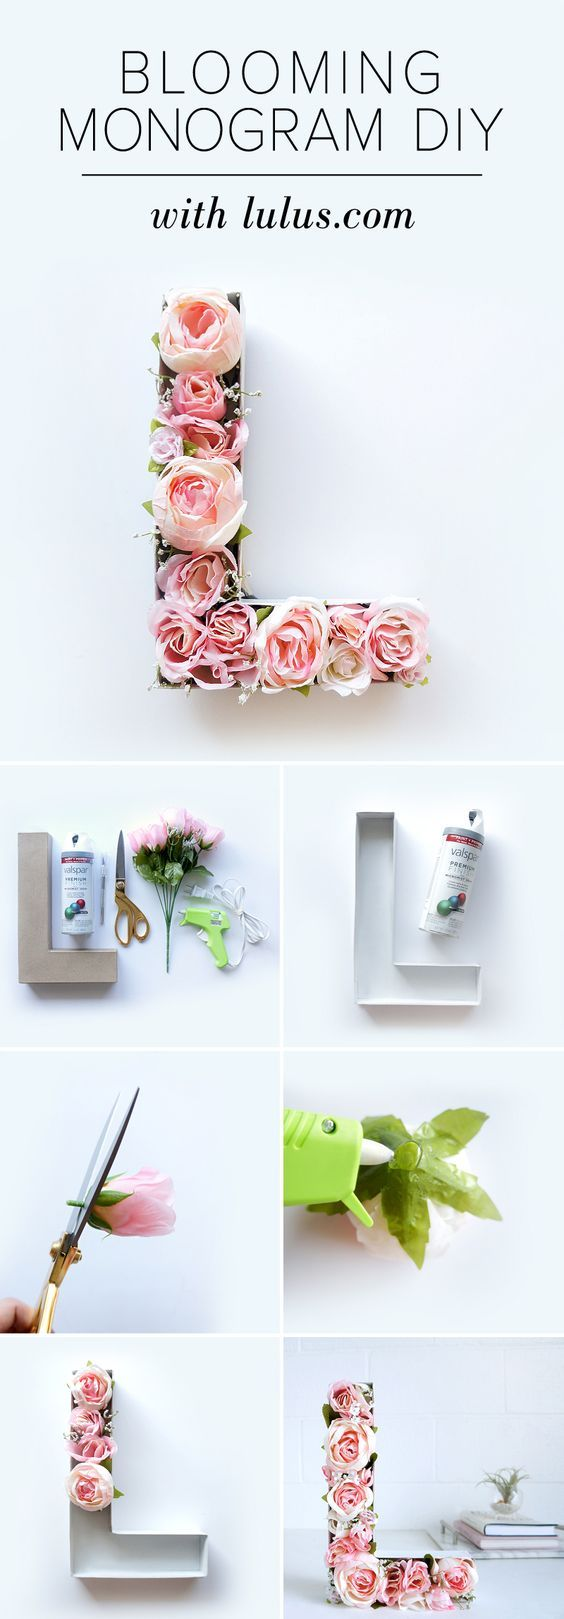 Blooming Monogram DIY | DIY Fun Tips